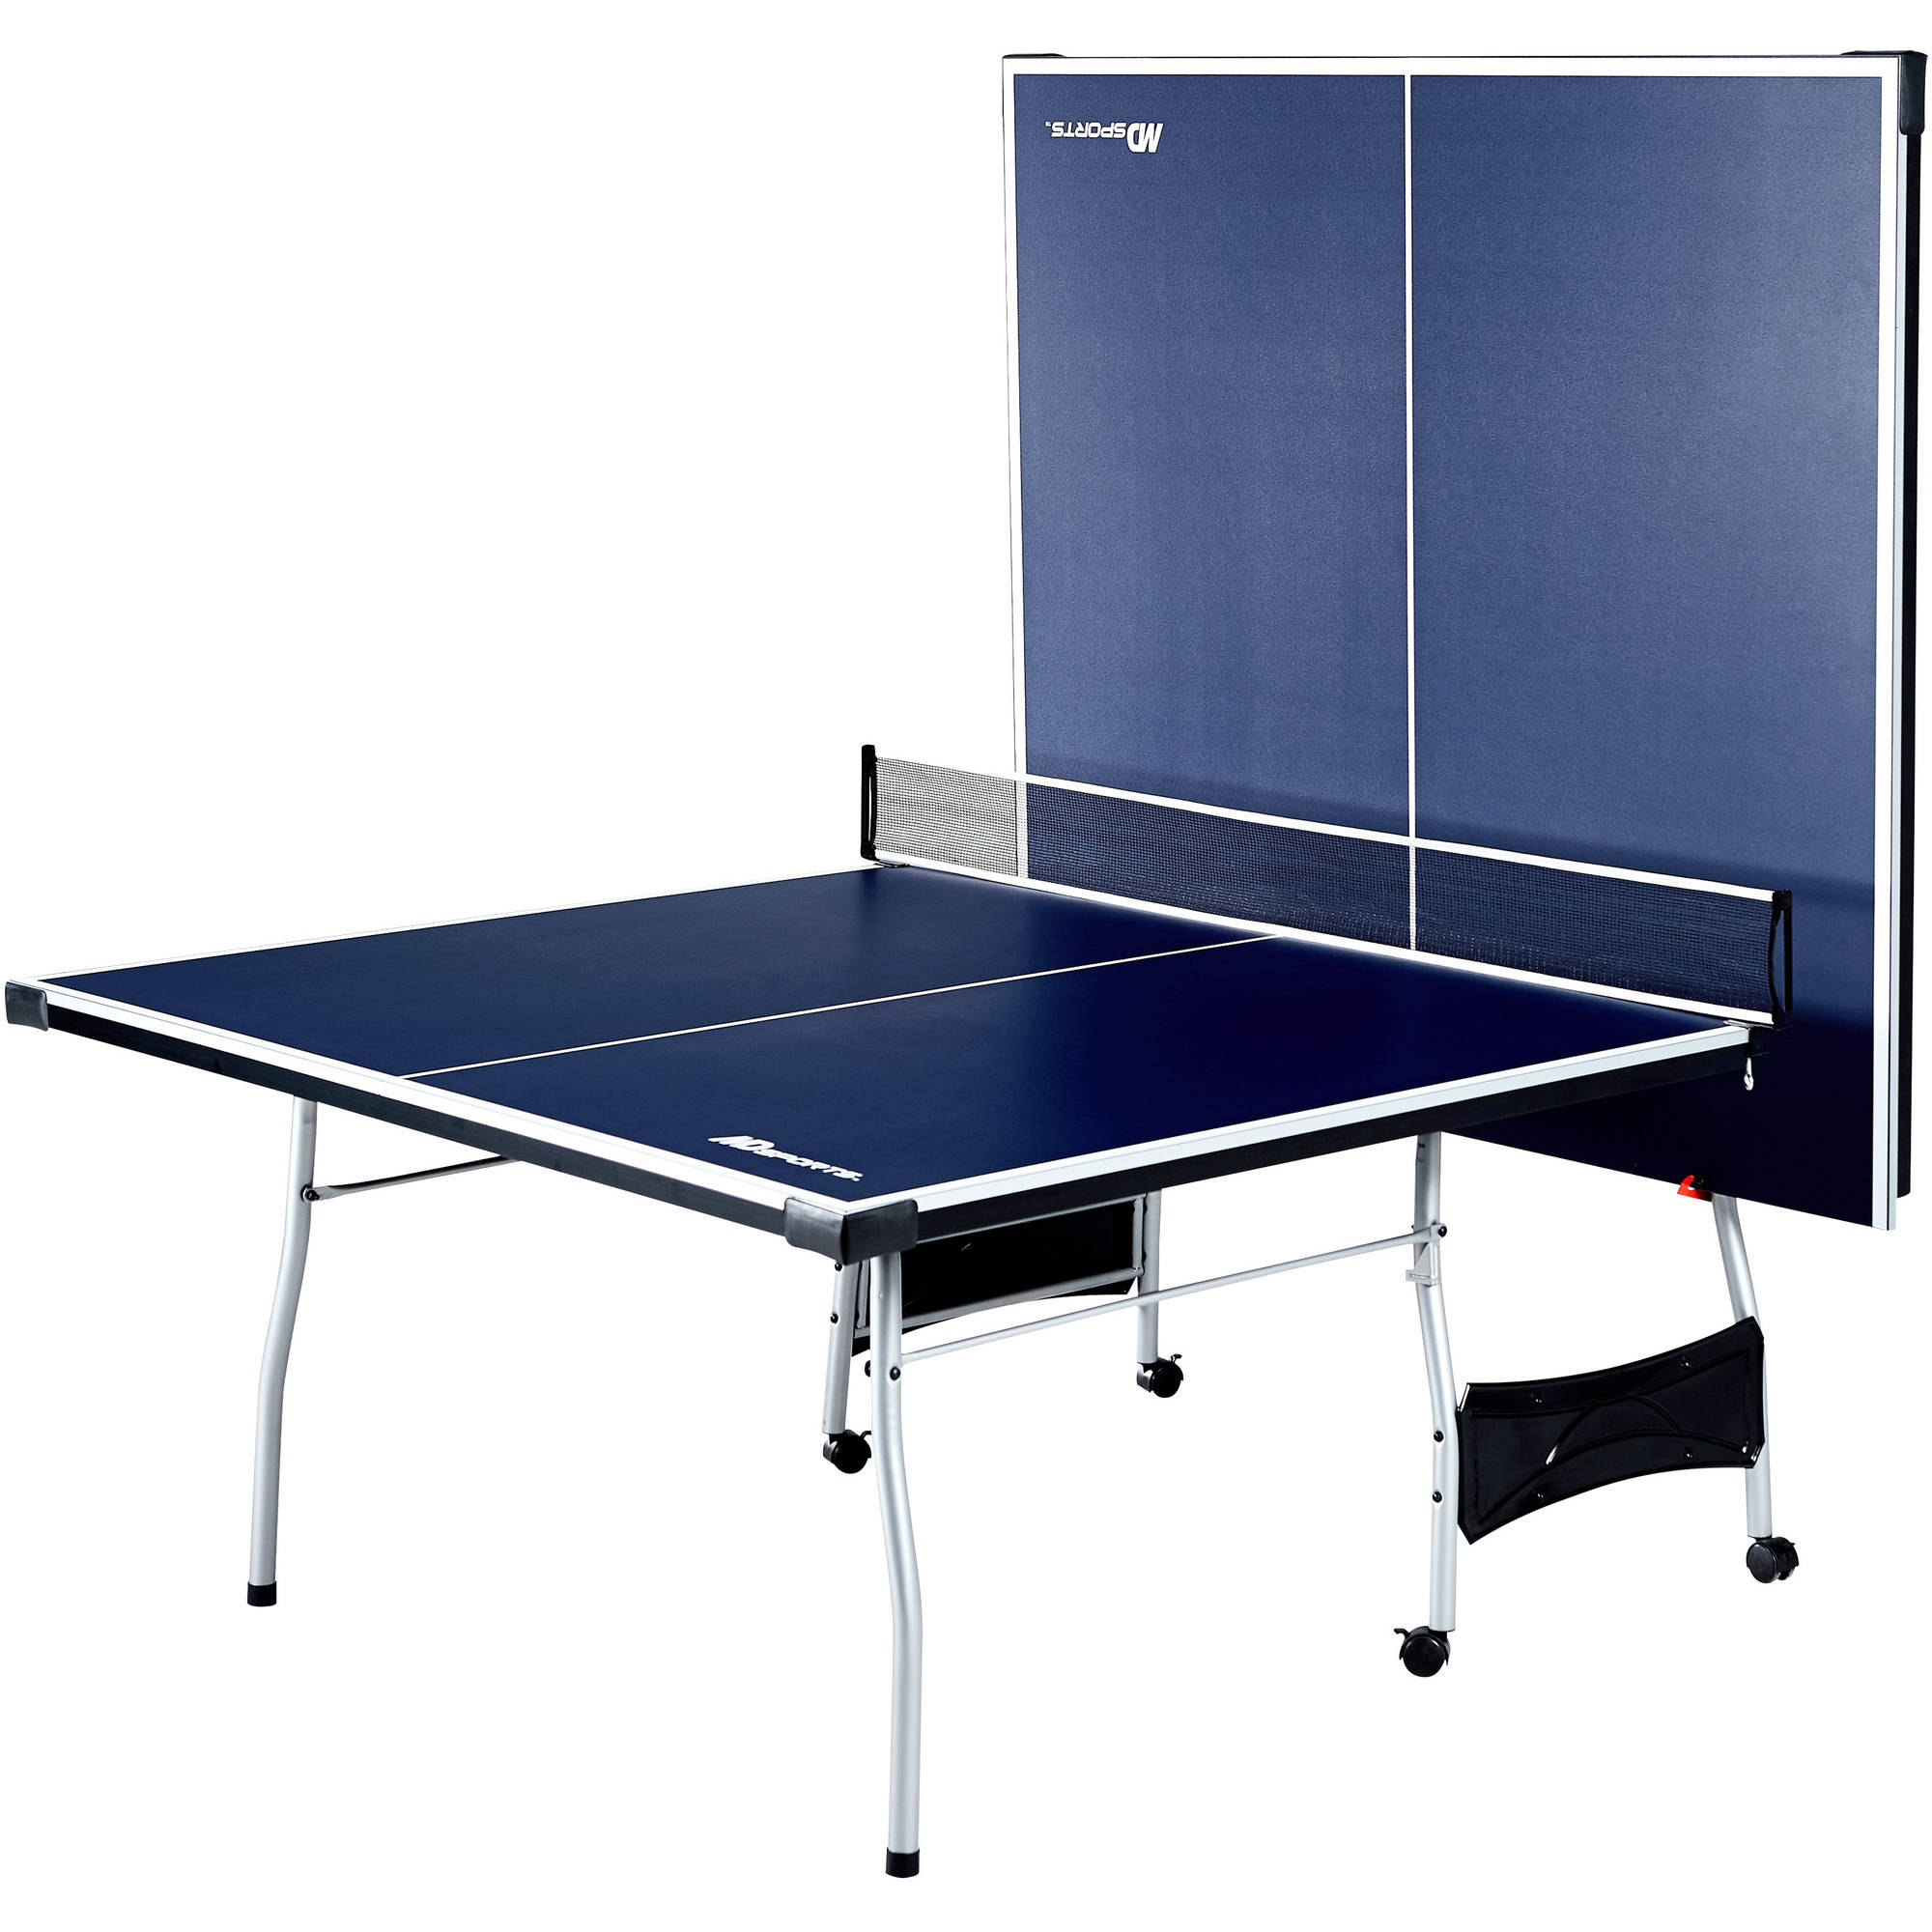 Replacement ping pong table top fabulous cornilleau nexeo - Dimension table de ping pong cornilleau ...